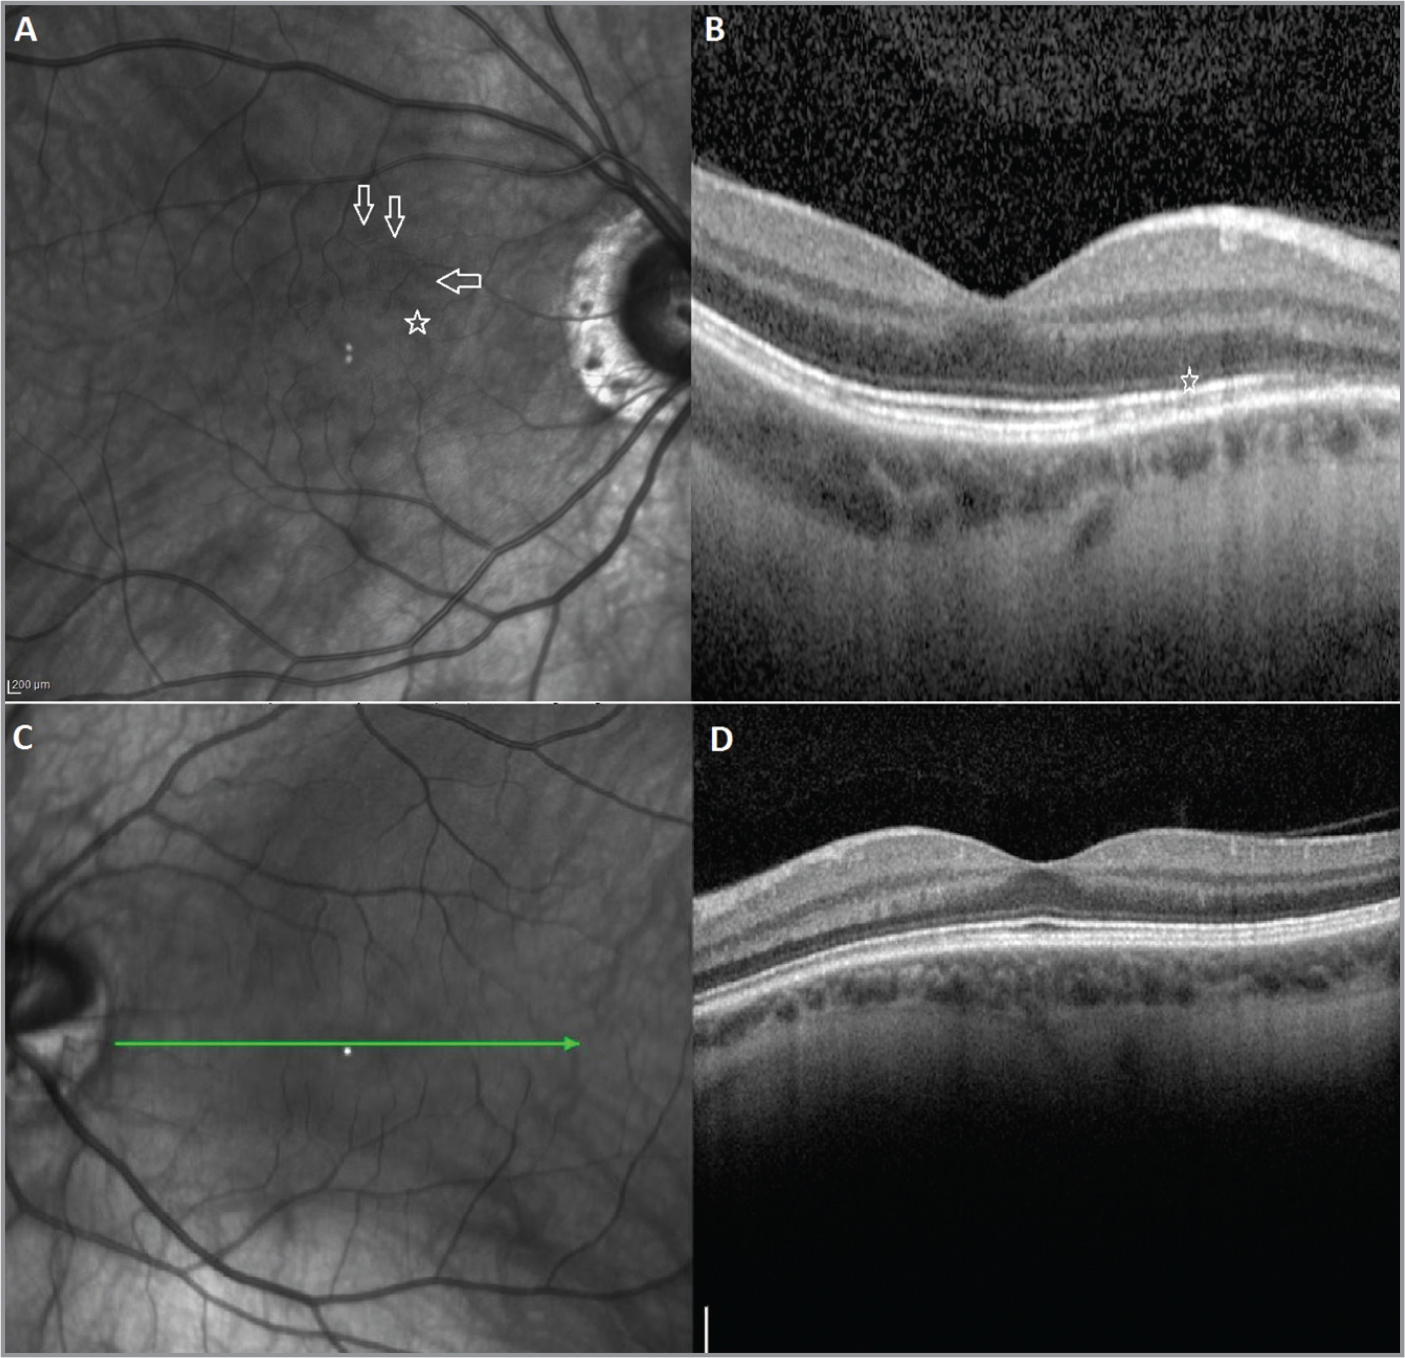 Infrared radiance (IR) and optical coherence tomography (OCT) images on initial presentation. IR in the right eye revealed multiple focal patches of oval-shaped decreased reflectance scattered circumferentially in the paramacular region (A). These lesions were more numerous in the superior macula (arrows). The OCT (B) showed normal foveal contour and inner retinal layers. There were multiple 50 μm to 100 μm focal areas of disruption of the outer segment / retinal pigment epithelium (OS/RPE) interface with overlying inner segment / outer segment (IS/OS) junction attenuation. The focal areas of OS/RPE interface disruption corresponded to the areas of reduced reflectance in the IR image (star). The IR (C) and OCT of the left eye were normal (D).